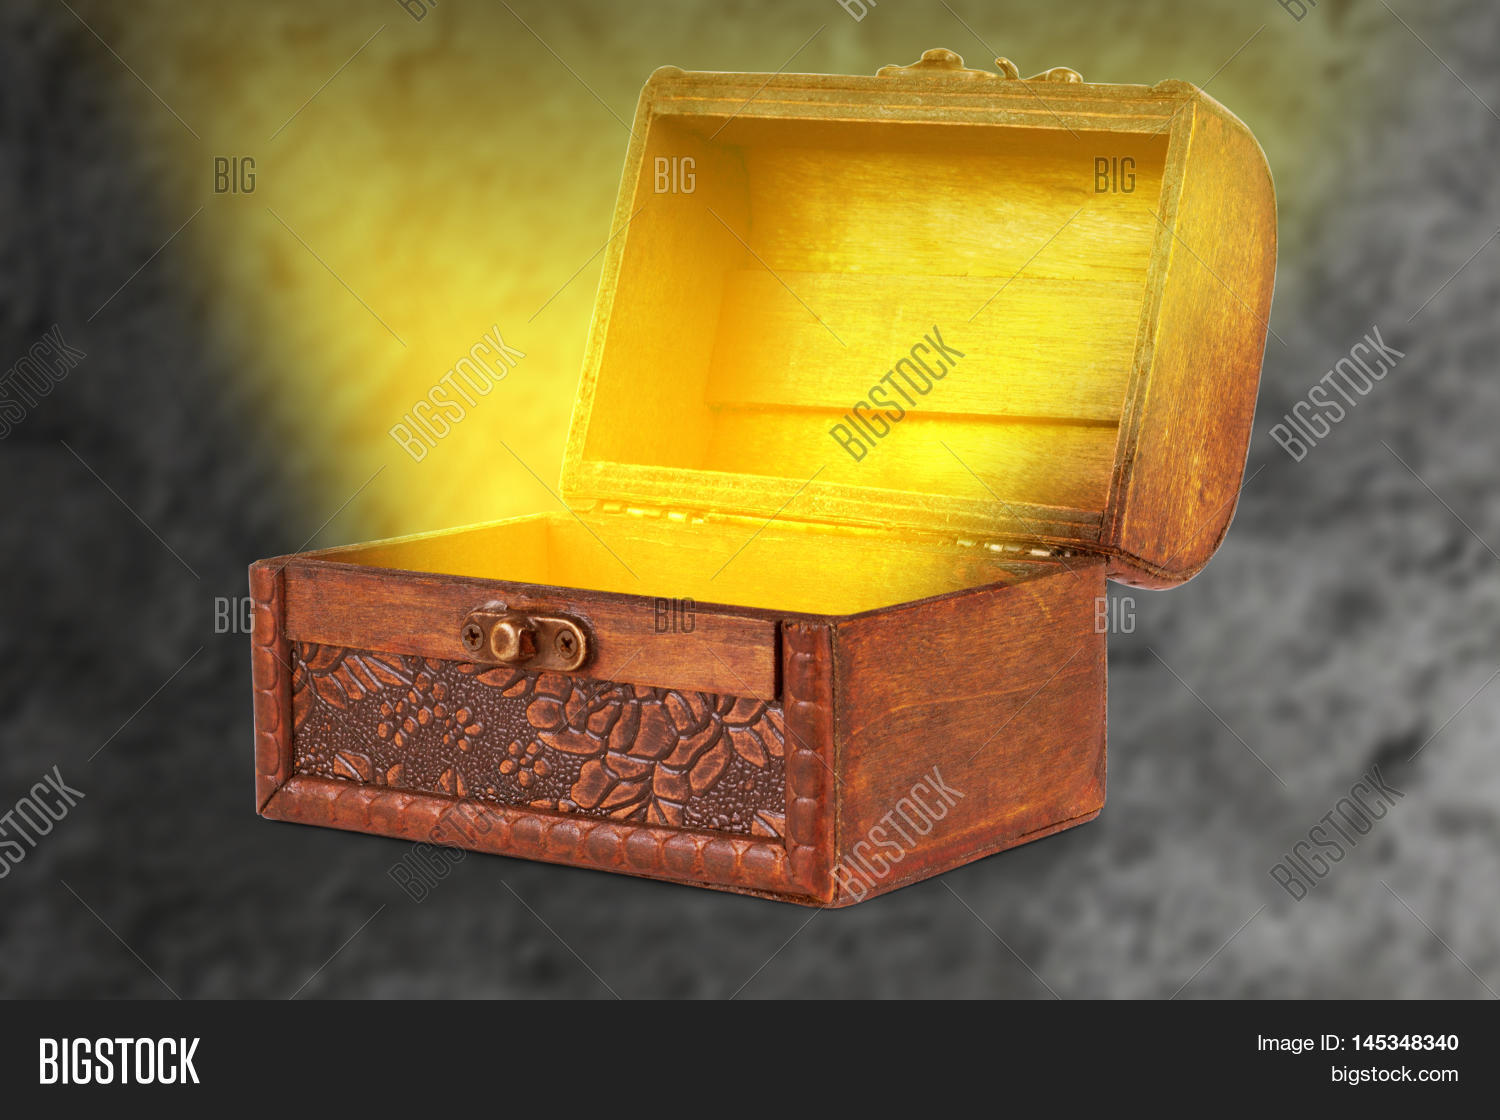 wooden treasure chest with a magical wispy light coming out of the box on a black